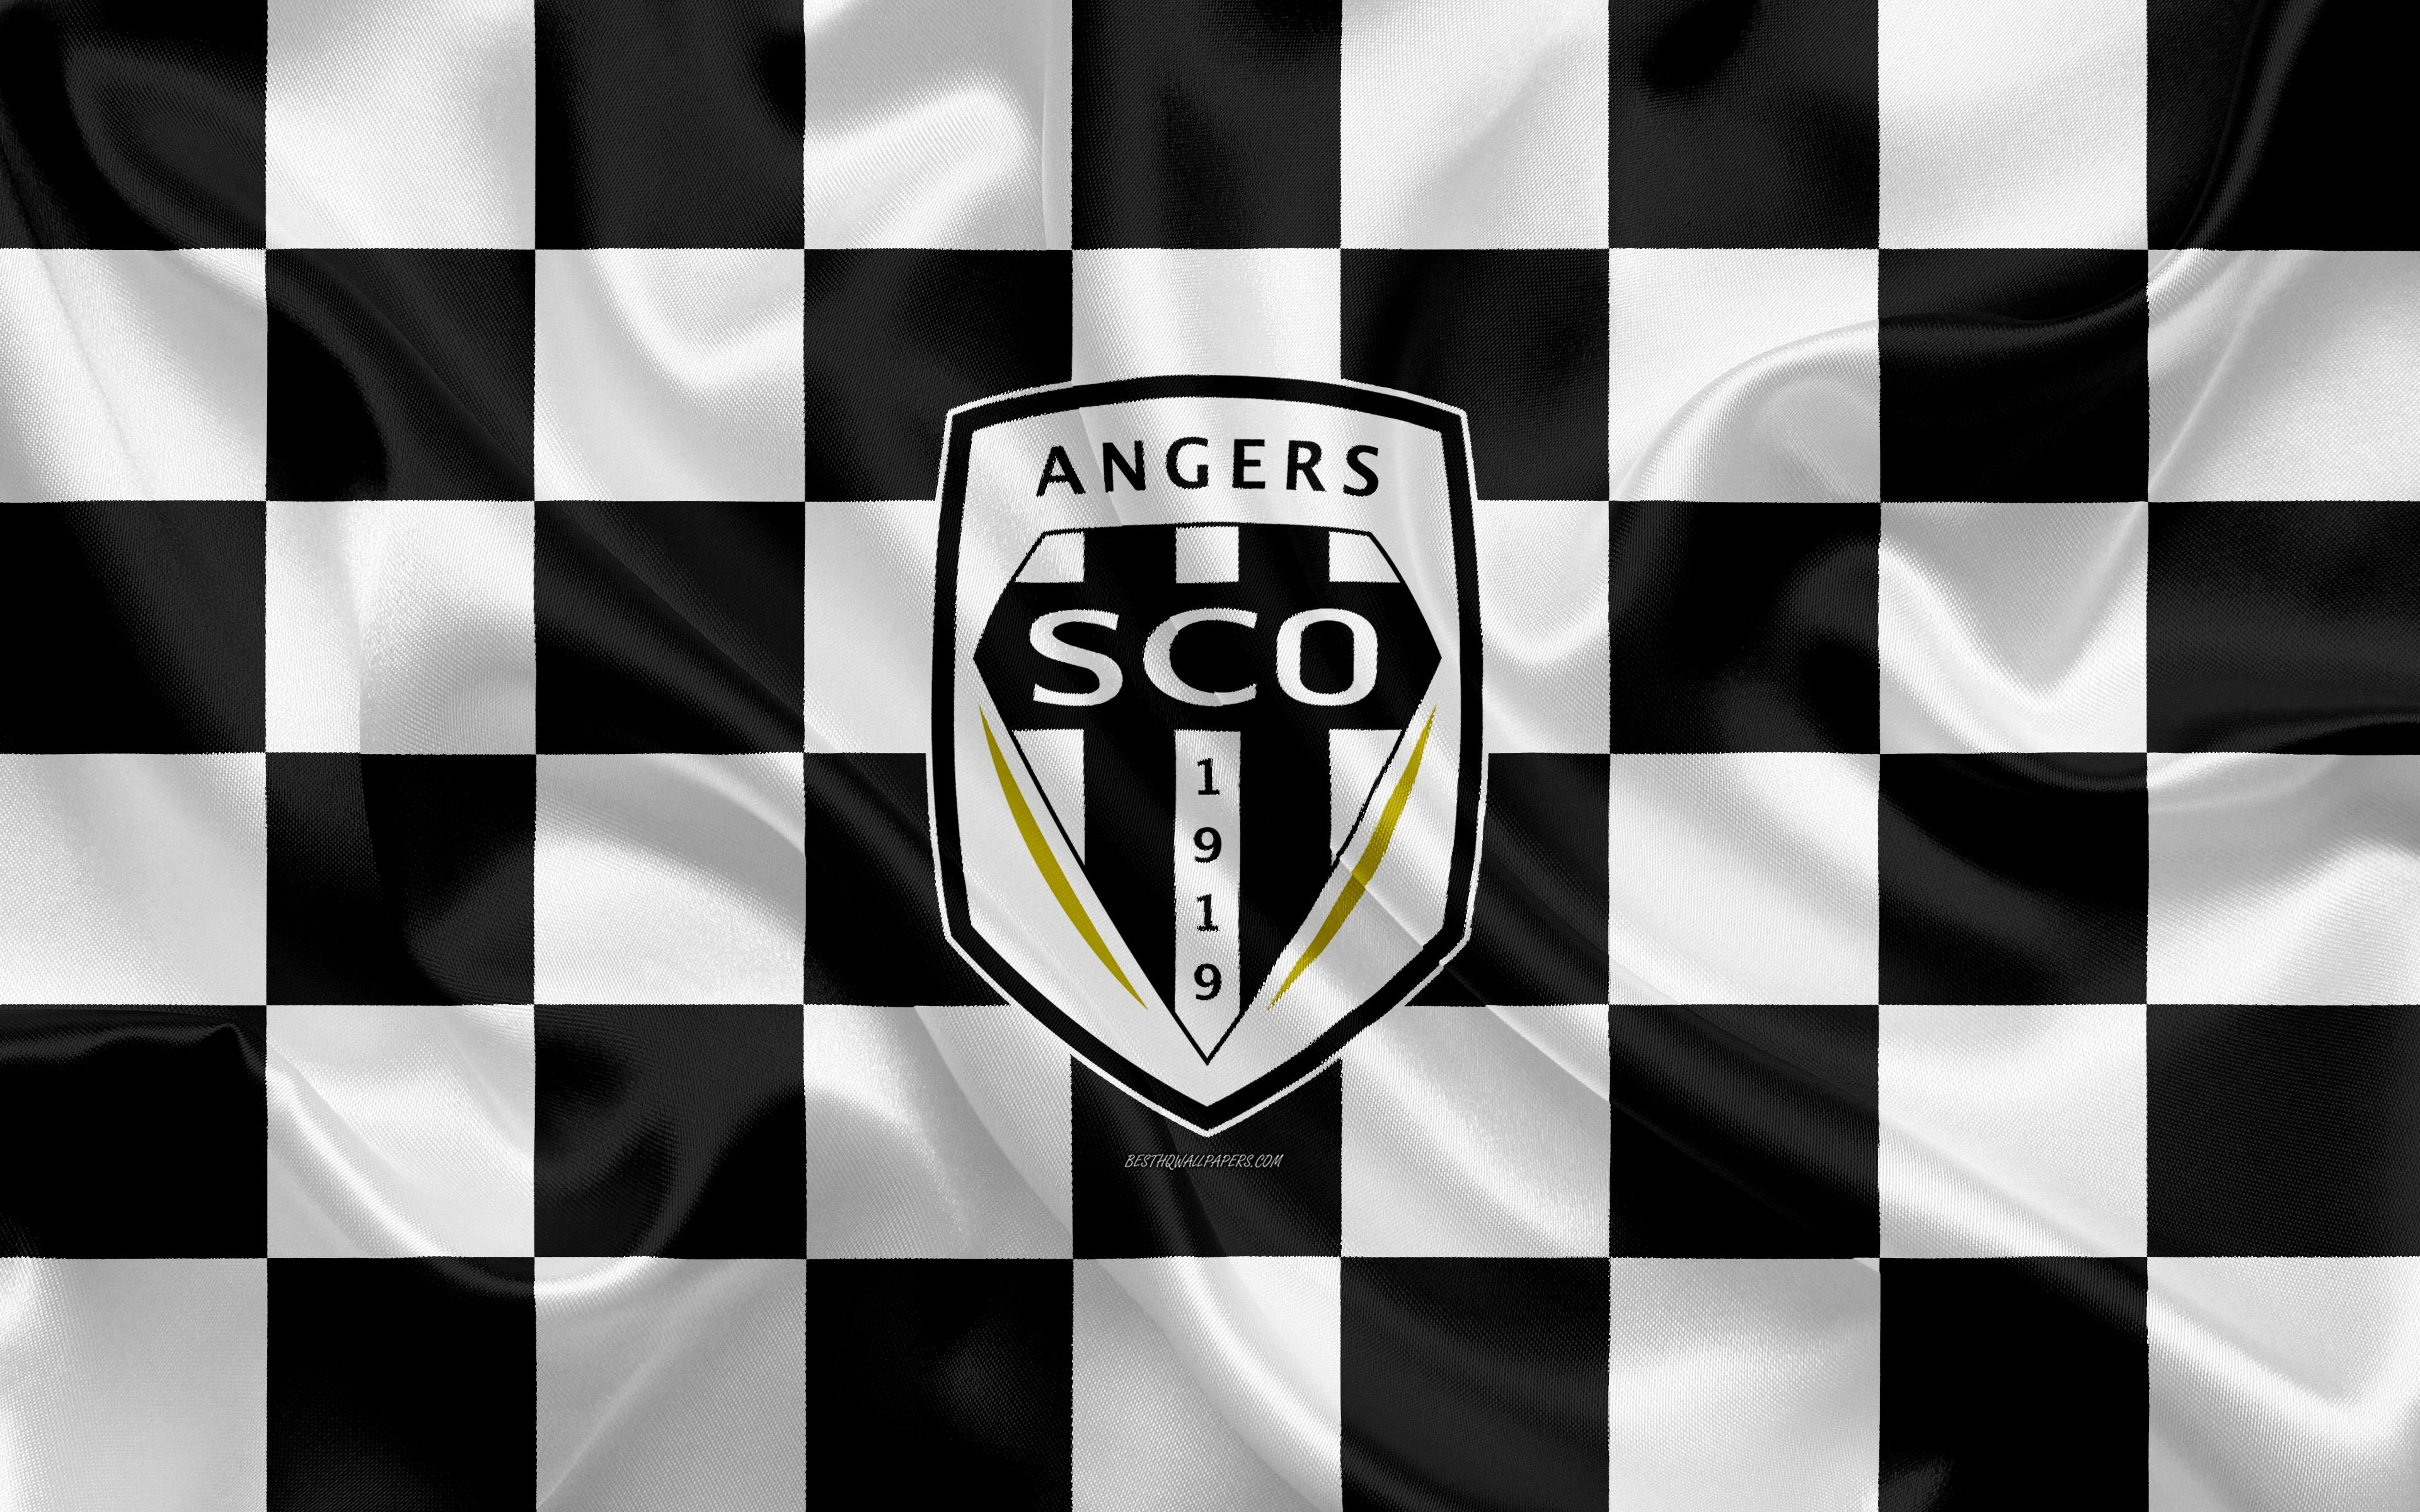 Download wallpapers Angers SCO, 4k, logo, creative art, white black ...